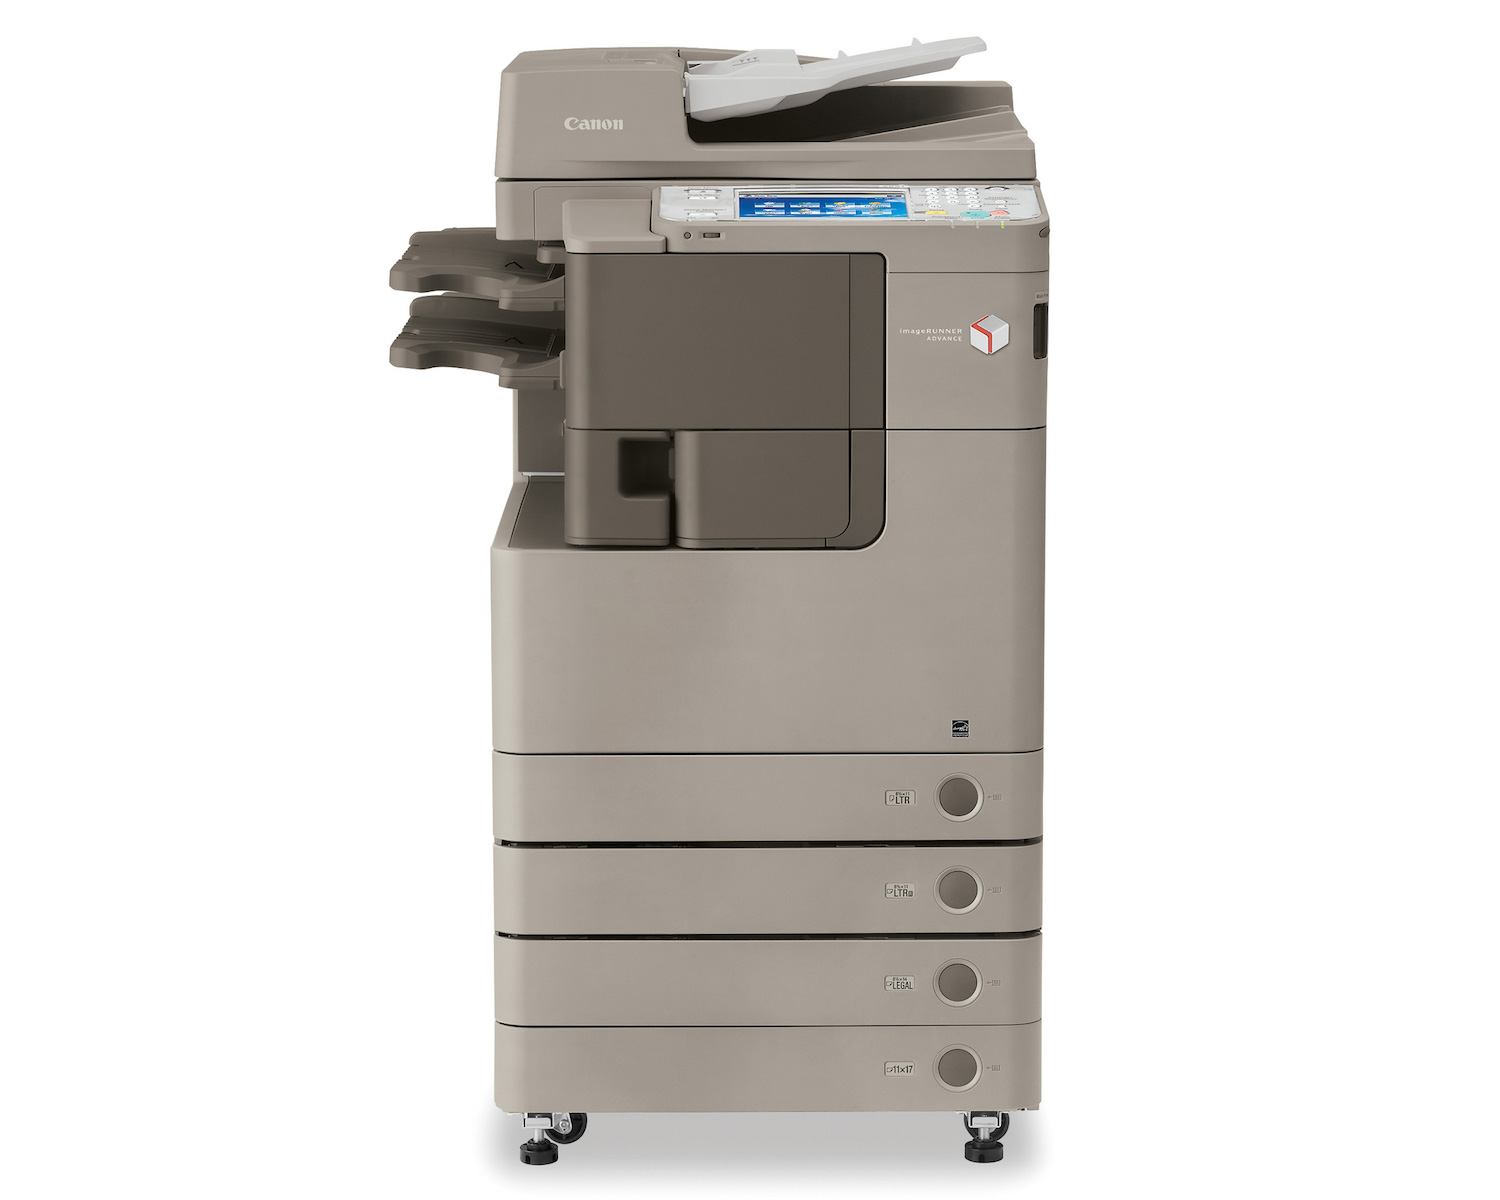 CANON IMAGERUNNER ADVANCE 4225 DRIVERS WINDOWS 7